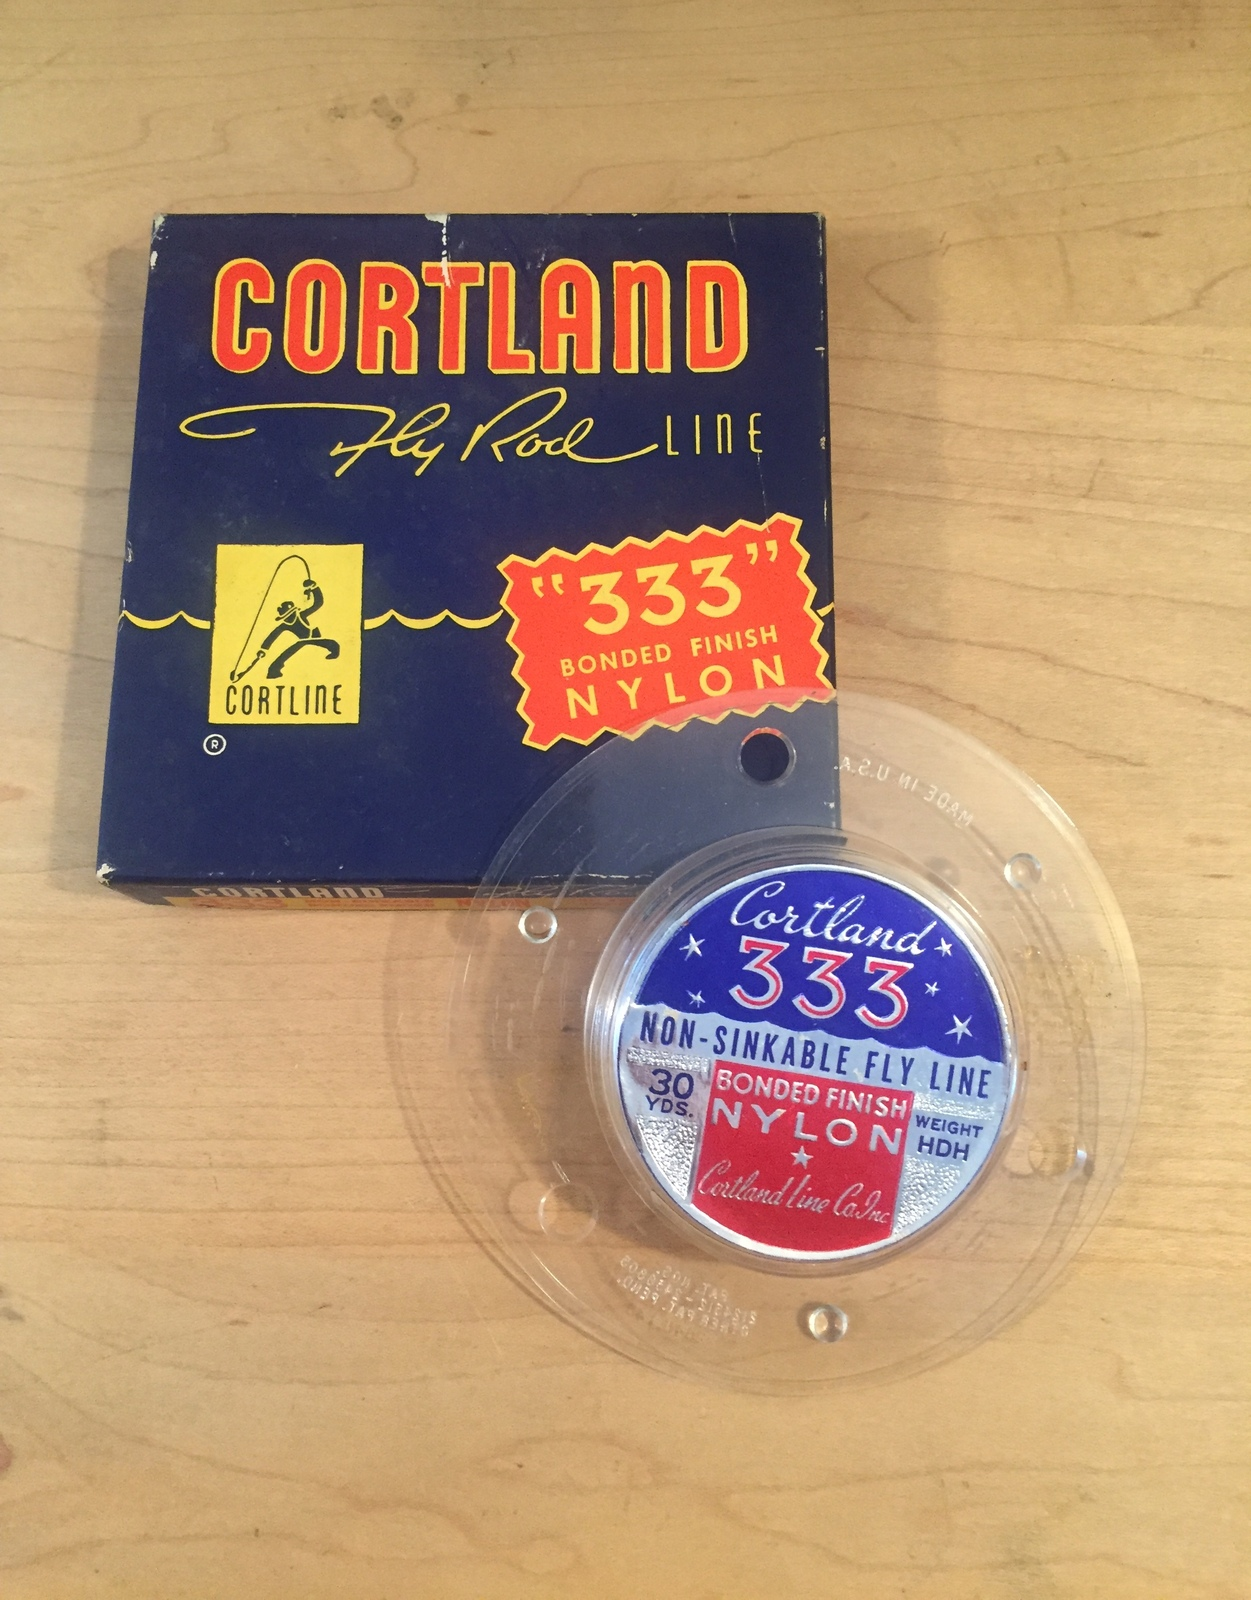 Vintage Cortland fly rod line packaging and spool